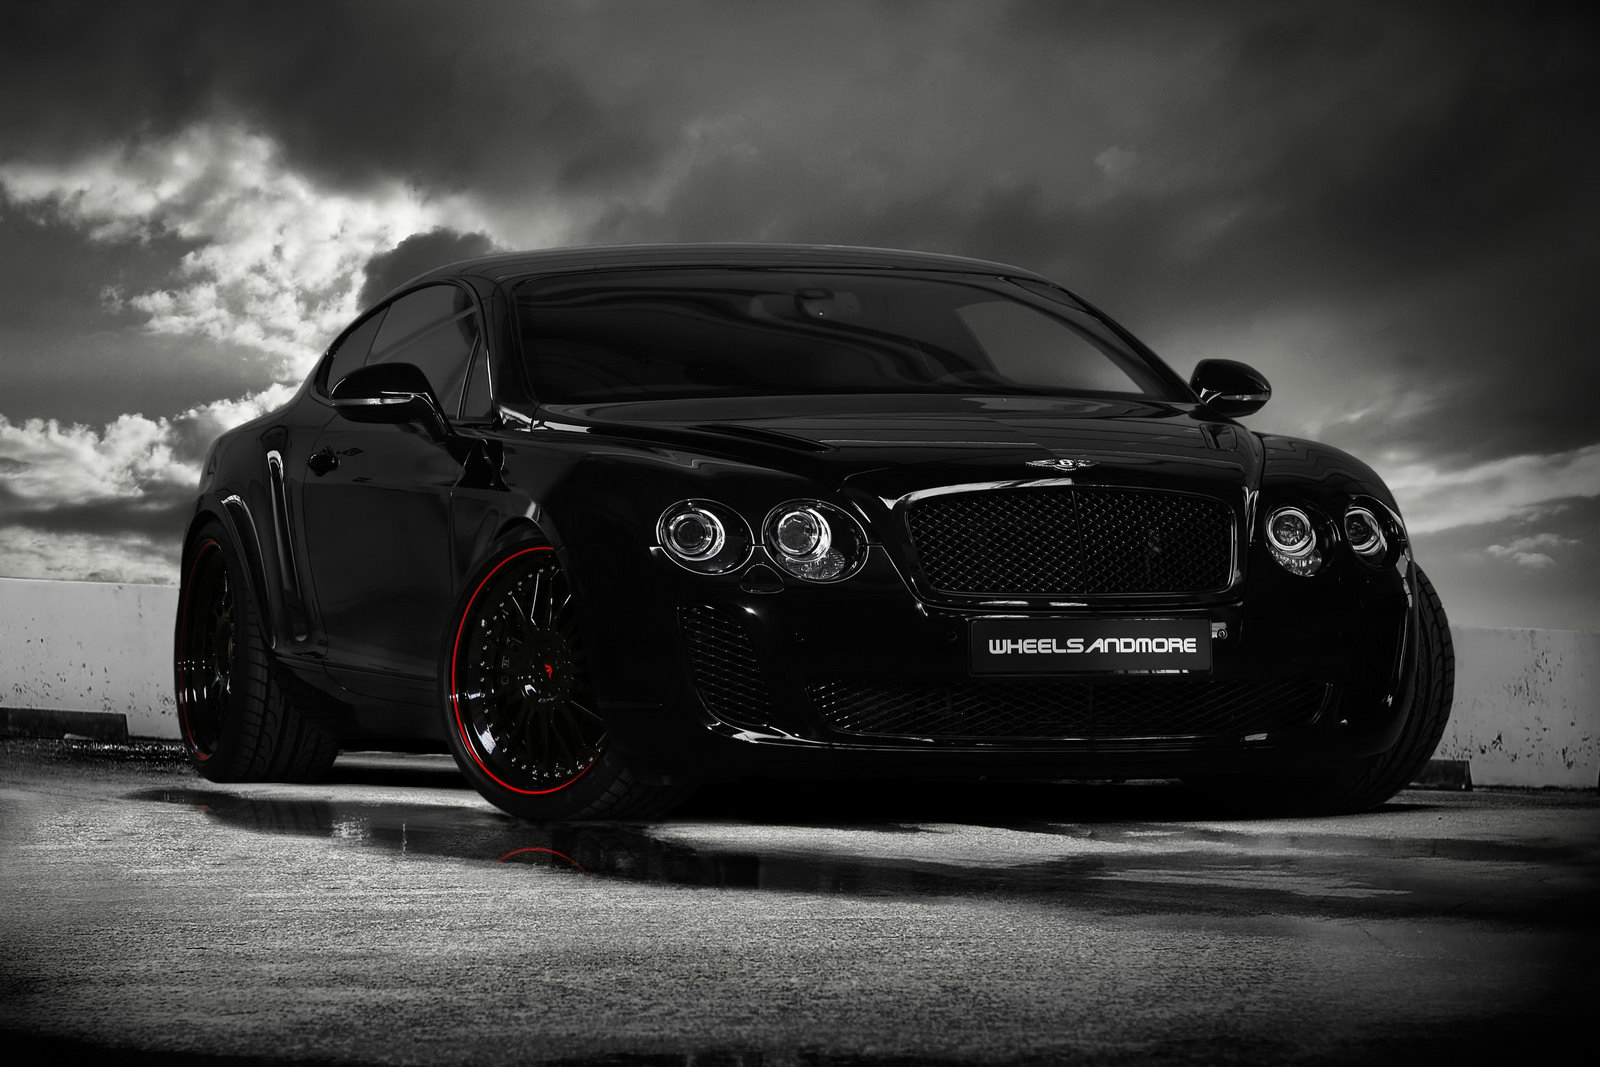 1600x1067 - Bentley Continental GT Wallpapers 27